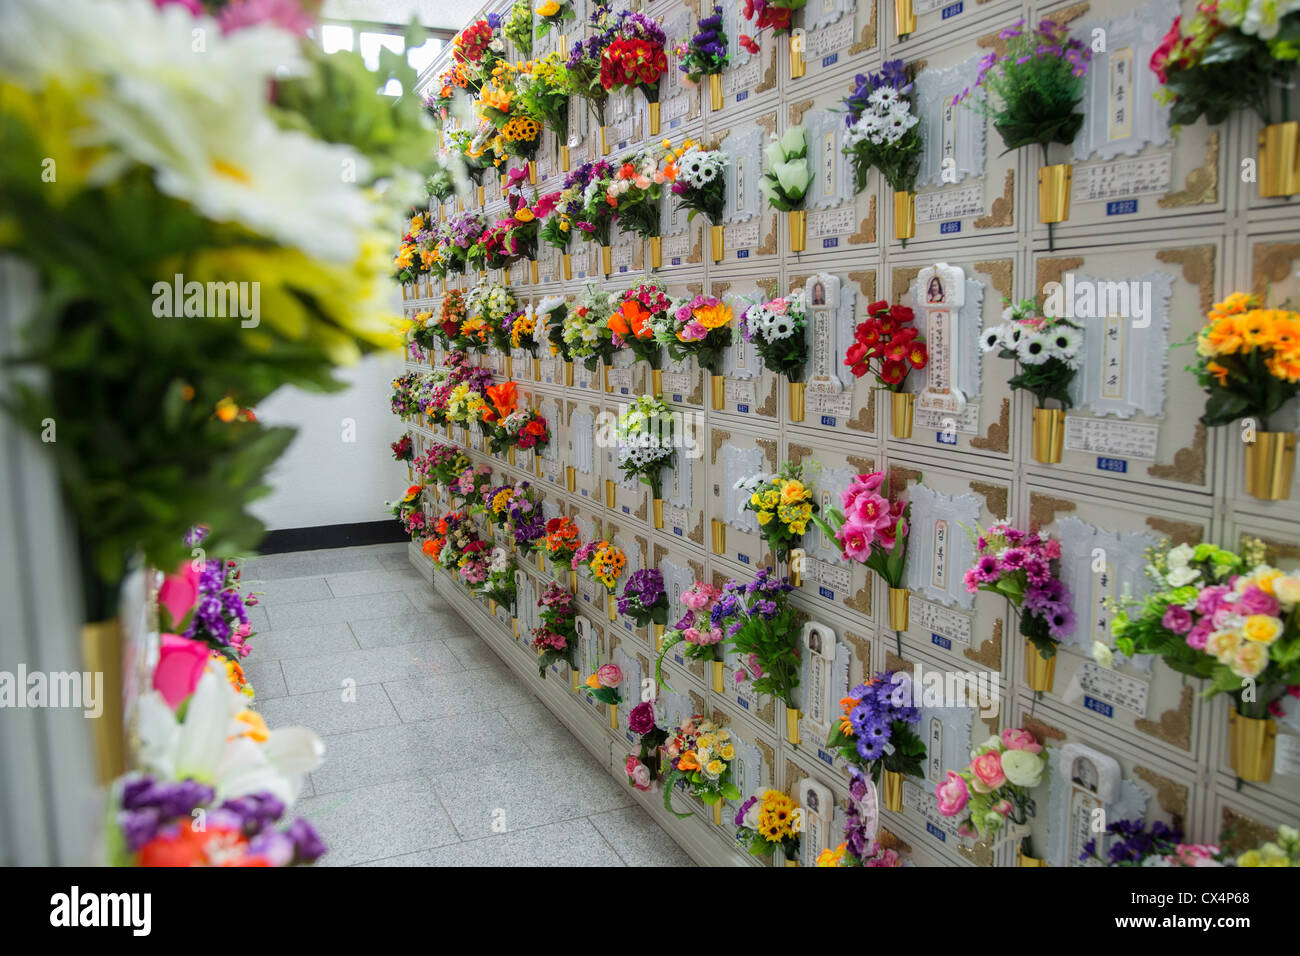 Lockers containing the ashes of deceased people in a temple in South Korea - Stock Image